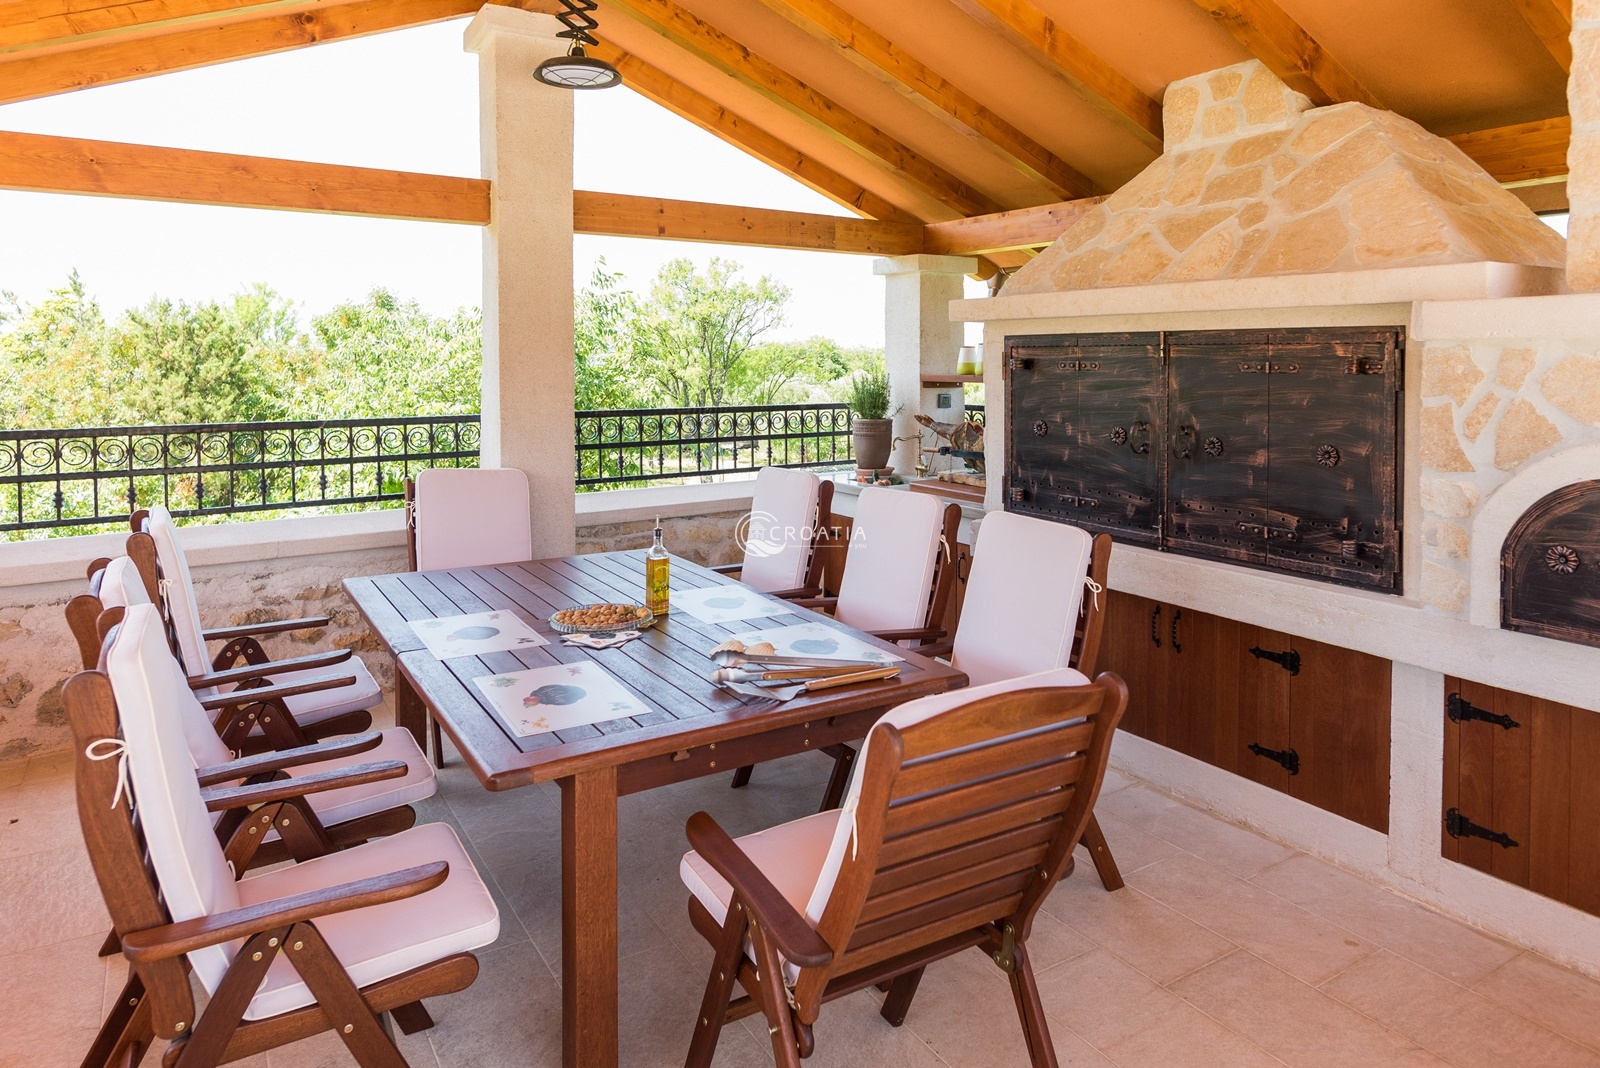 Rustic villa Ivan for rent in beautiful Skradin